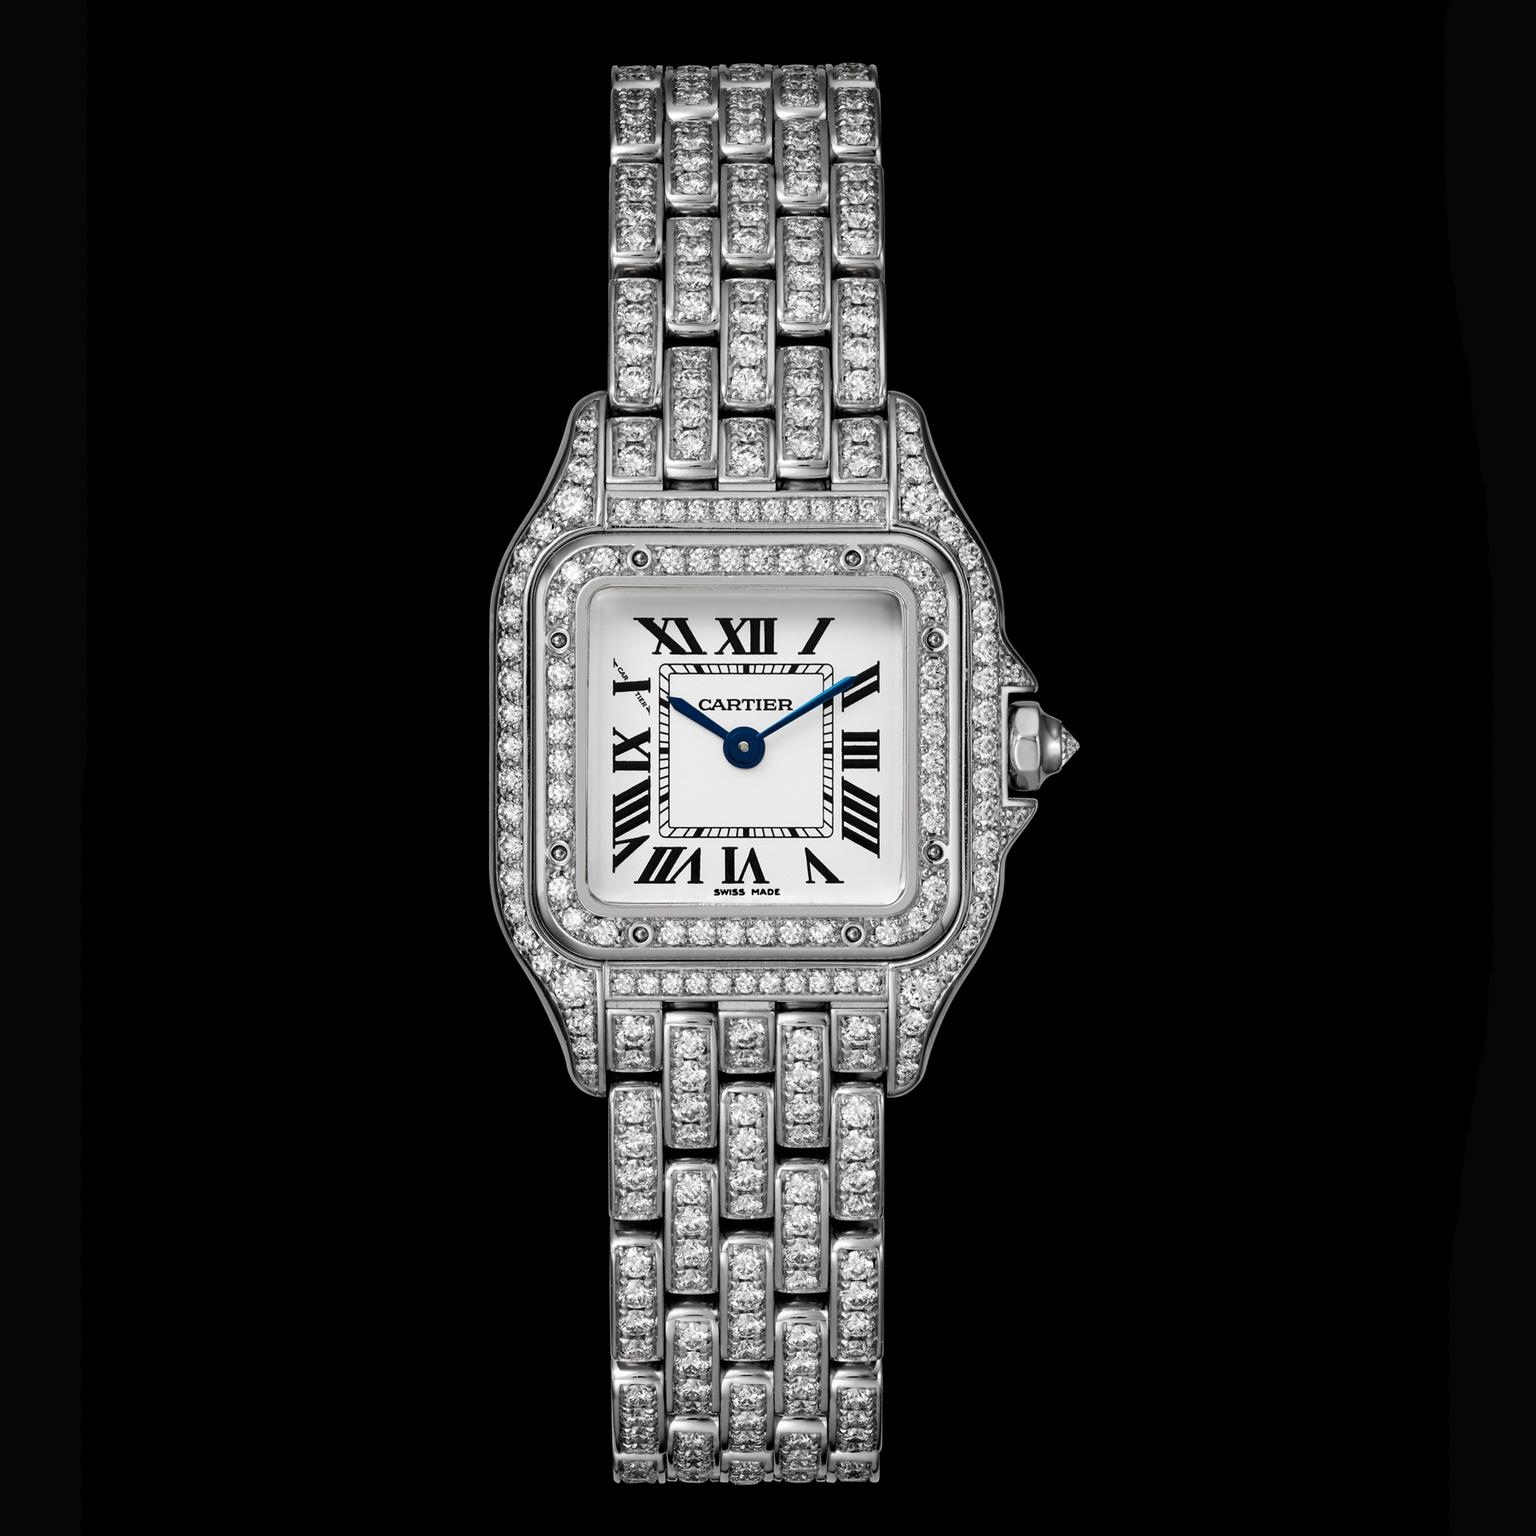 Small size Panthère de Cartier fully diamond-set watch in white gold